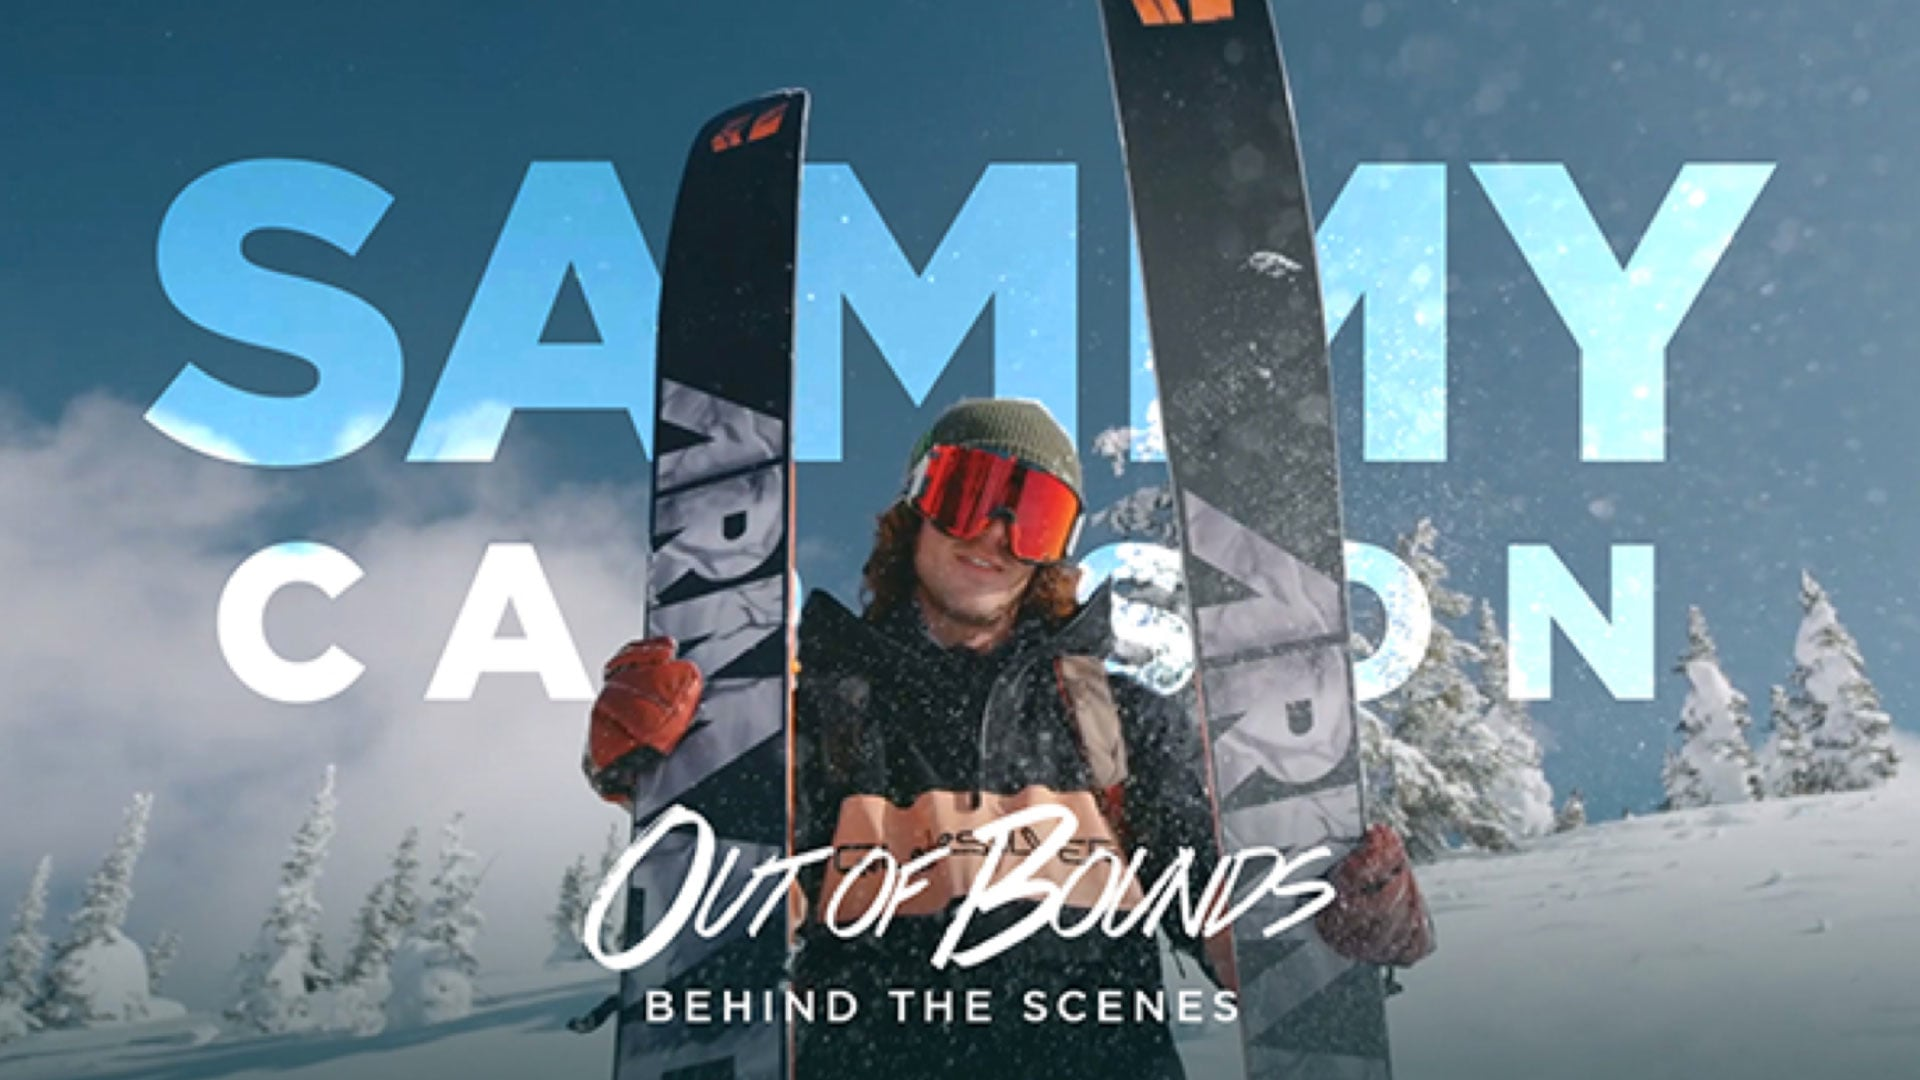 Out of Bounds - Behind the Scenes 10 - Sammy Carlson